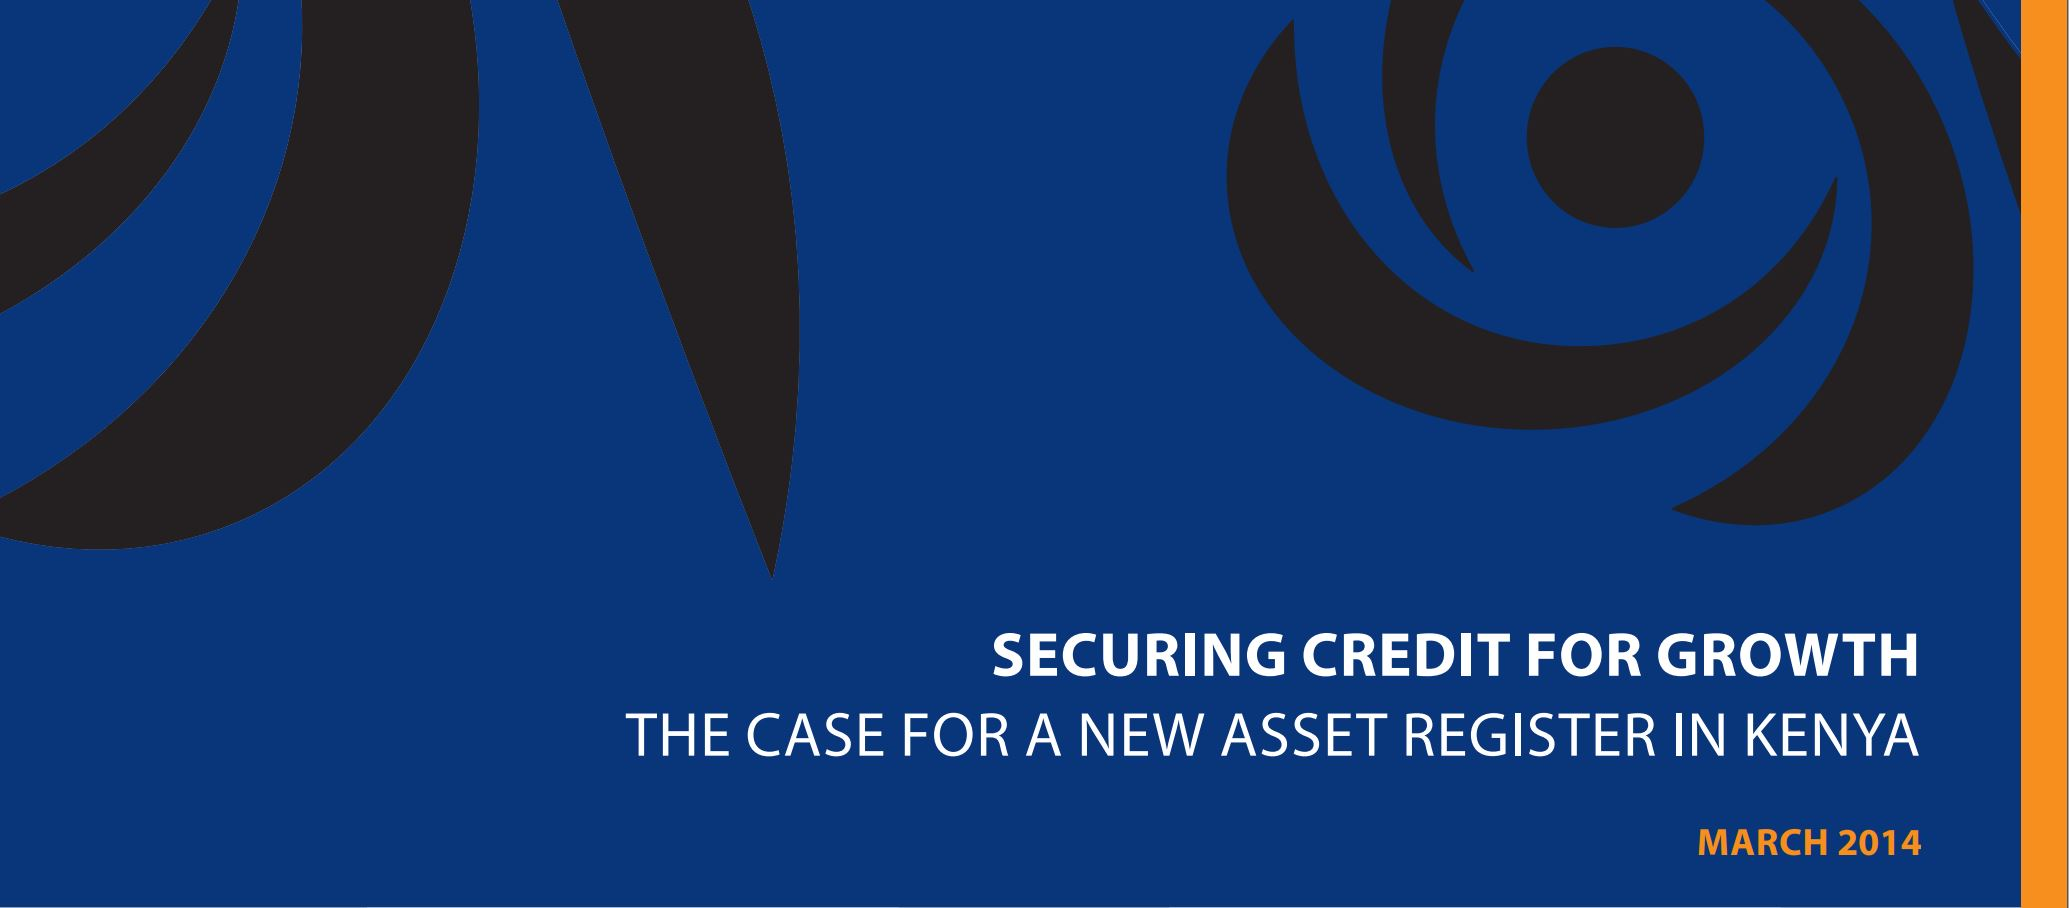 Securing credit for growth: The case for a new asset register in Kenya